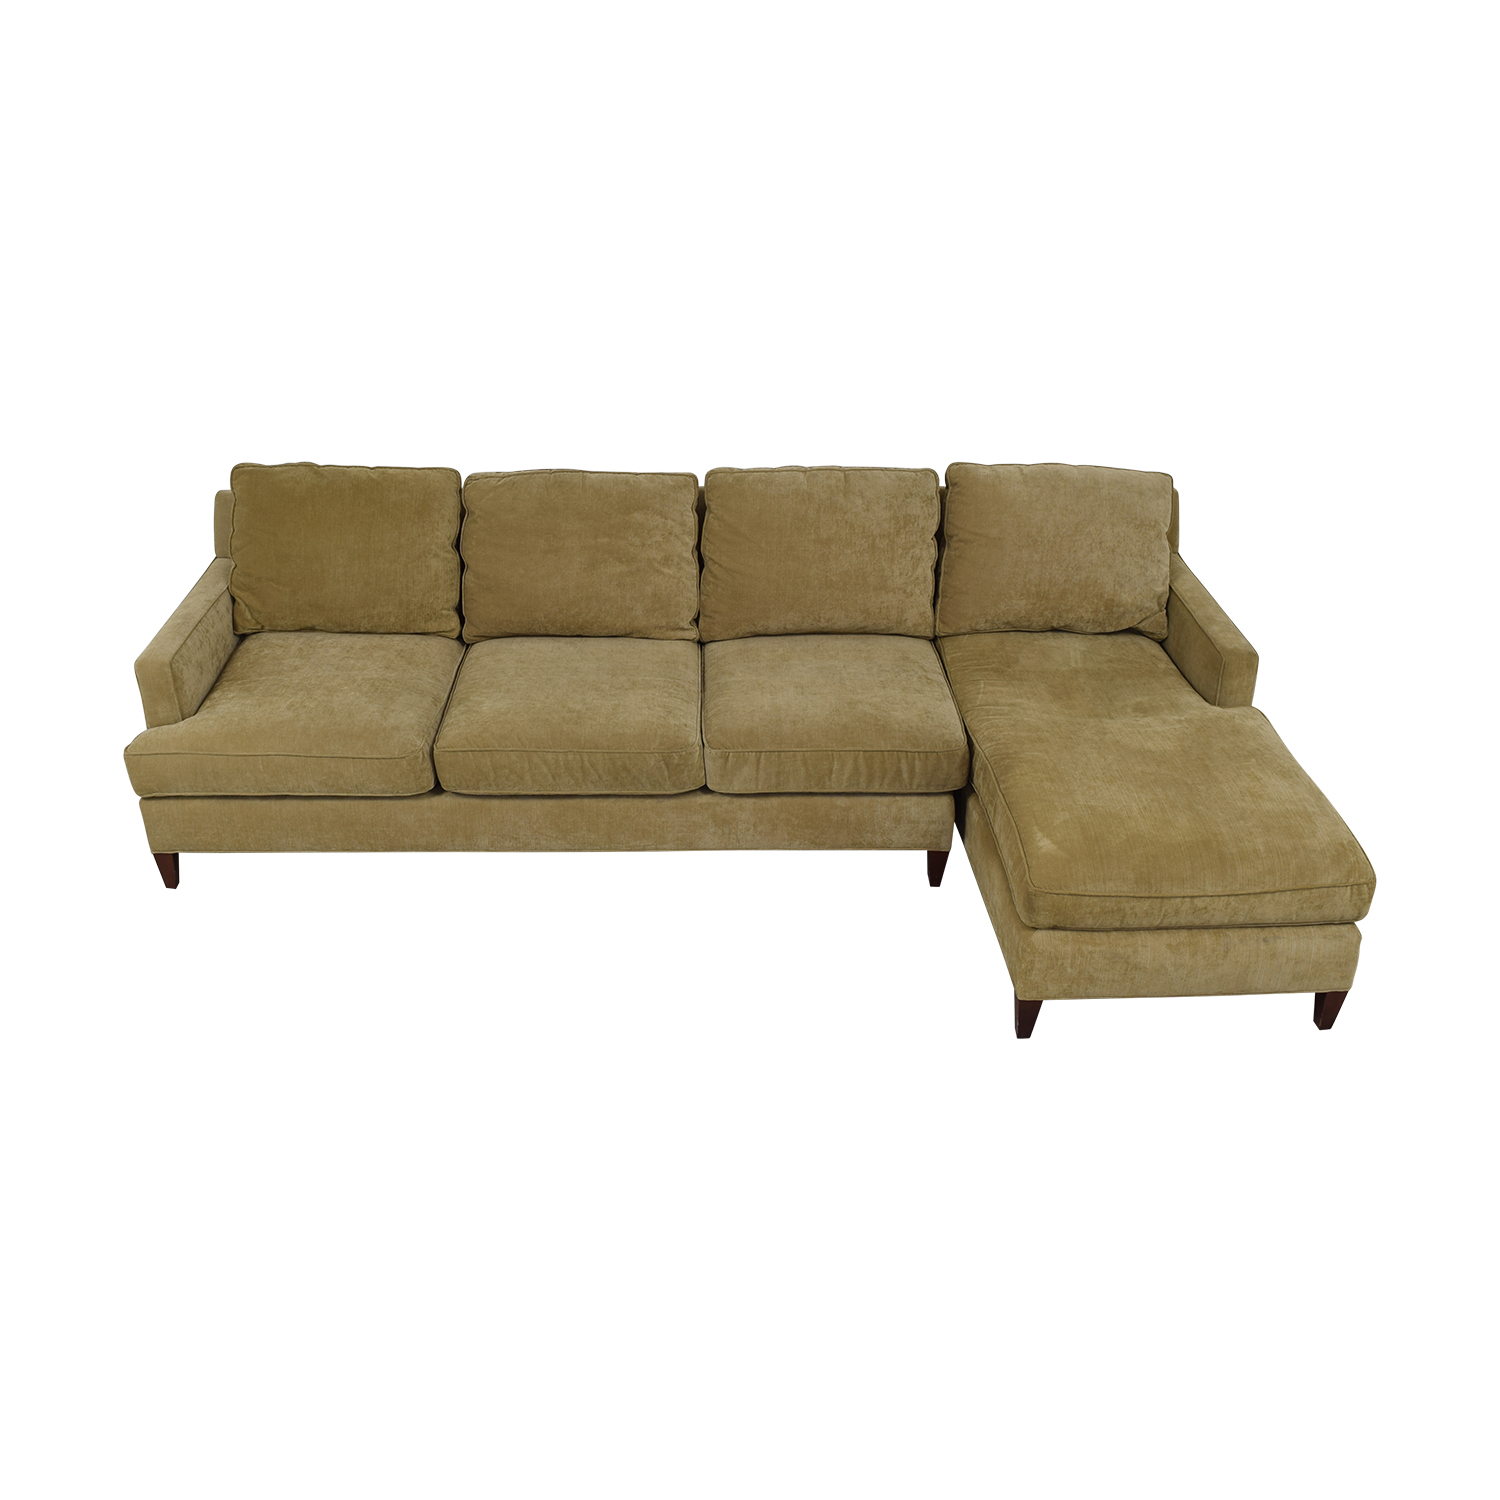 Mitchell Gold + Bob Williams Mitchell Gold + Bob Williams Clifton Sectional Sofa used